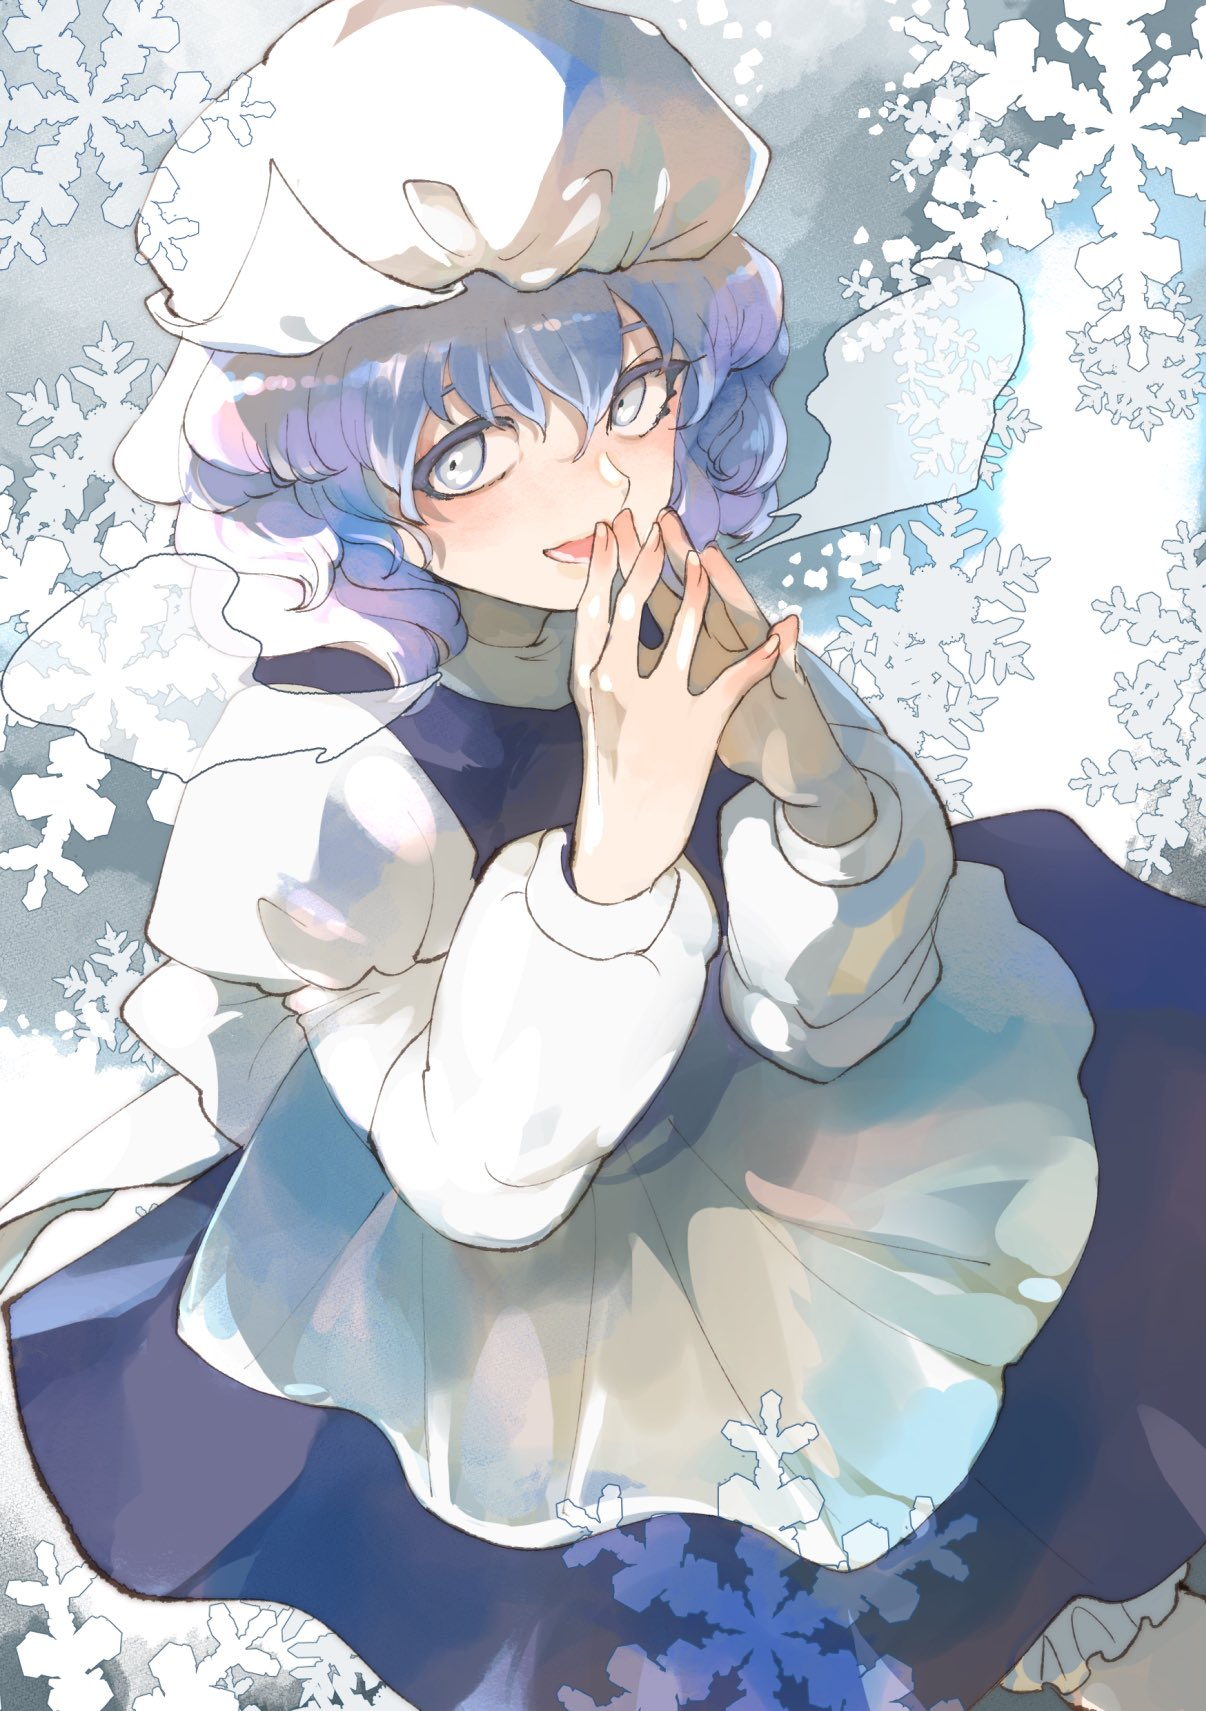 1girl bangs bloomers blue_dress blue_eyes blue_hair bow breath cold cowboy_shot curly_hair dress dutch_angle fingers_together hair_between_eyes hands_up hat highres joniko1110 juliet_sleeves letty_whiterock long_sleeves looking_to_the_side looking_up mob_cap open_mouth puffy_sleeves sash shirt short_hair snowflakes solo steepled_fingers teeth touhou triangular_headpiece turtleneck underwear white_bow white_headwear white_shirt winter_clothes